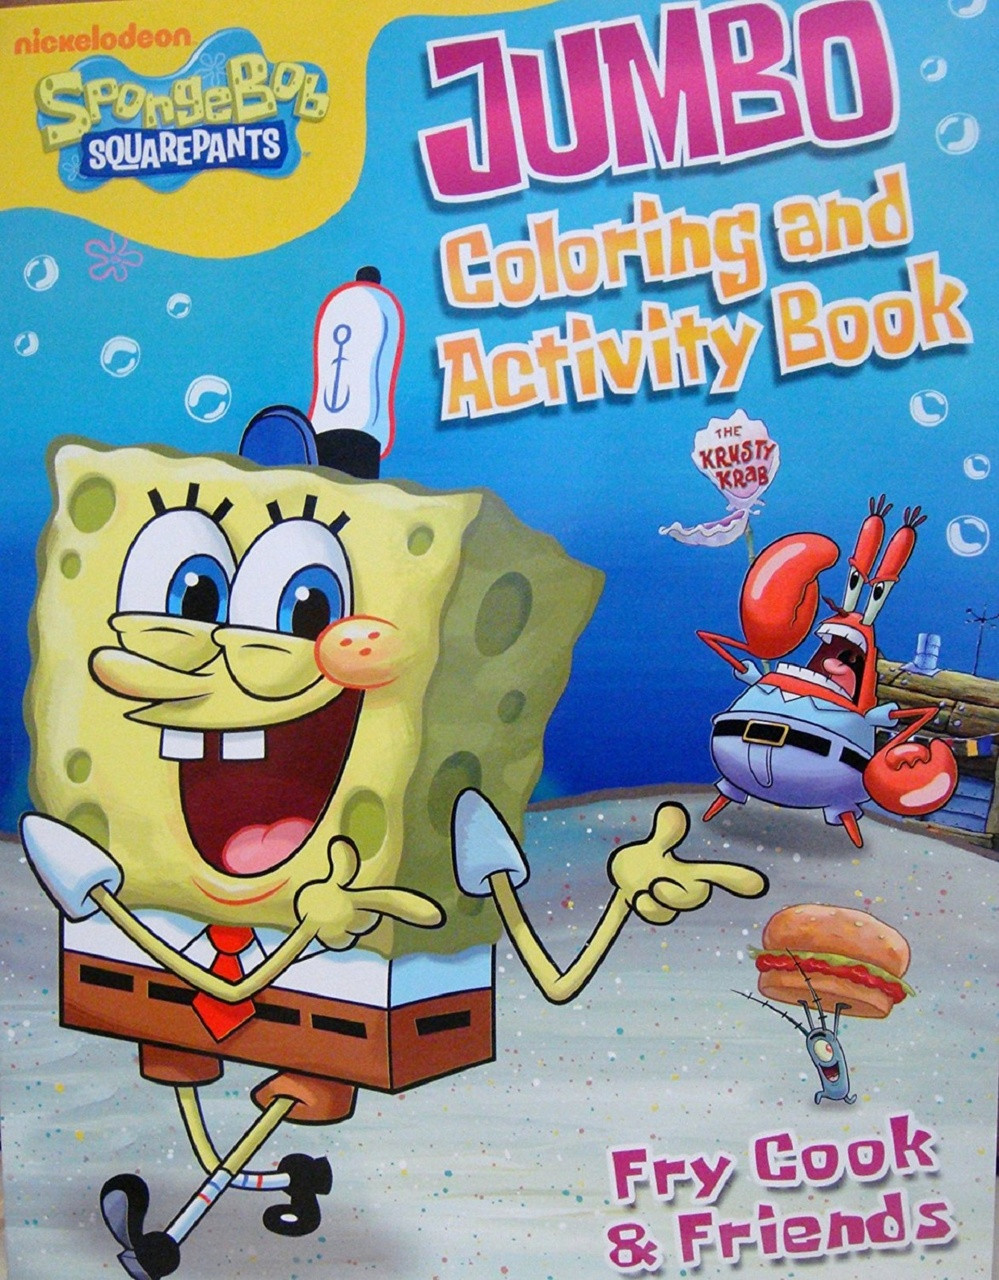 Coloring Book - Spongebob Squarepants - Party Favors - 96 Pages - Fry Cook and Friends